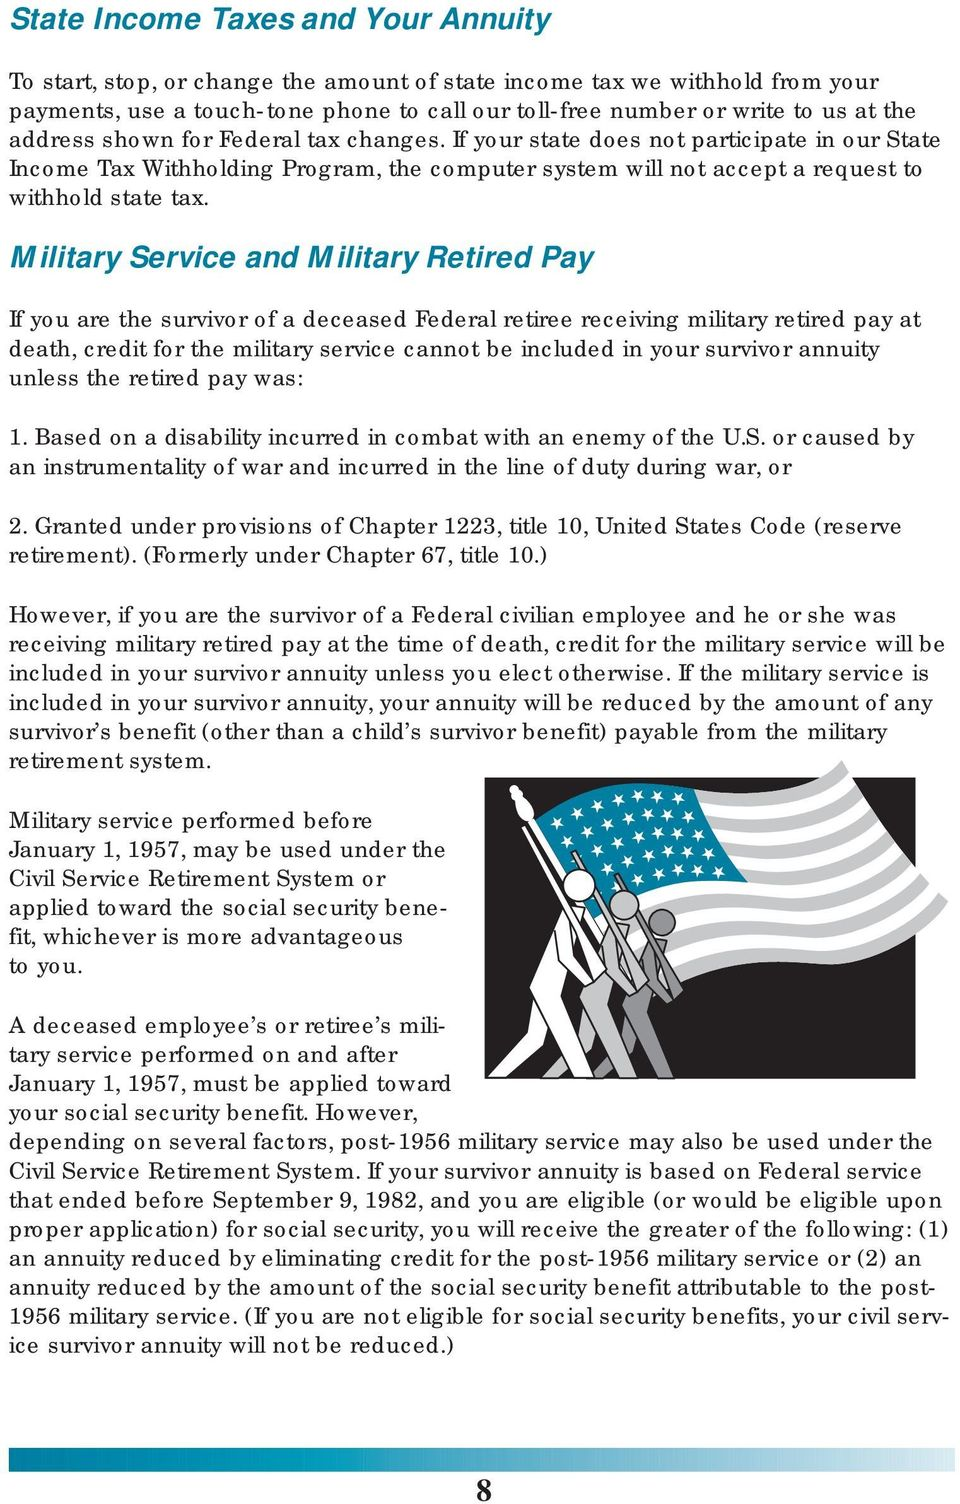 Military Service and Military Retired Pay If you are the survivor of a deceased Federal retiree receiving military retired pay at death, credit for the military service cannot be included in your